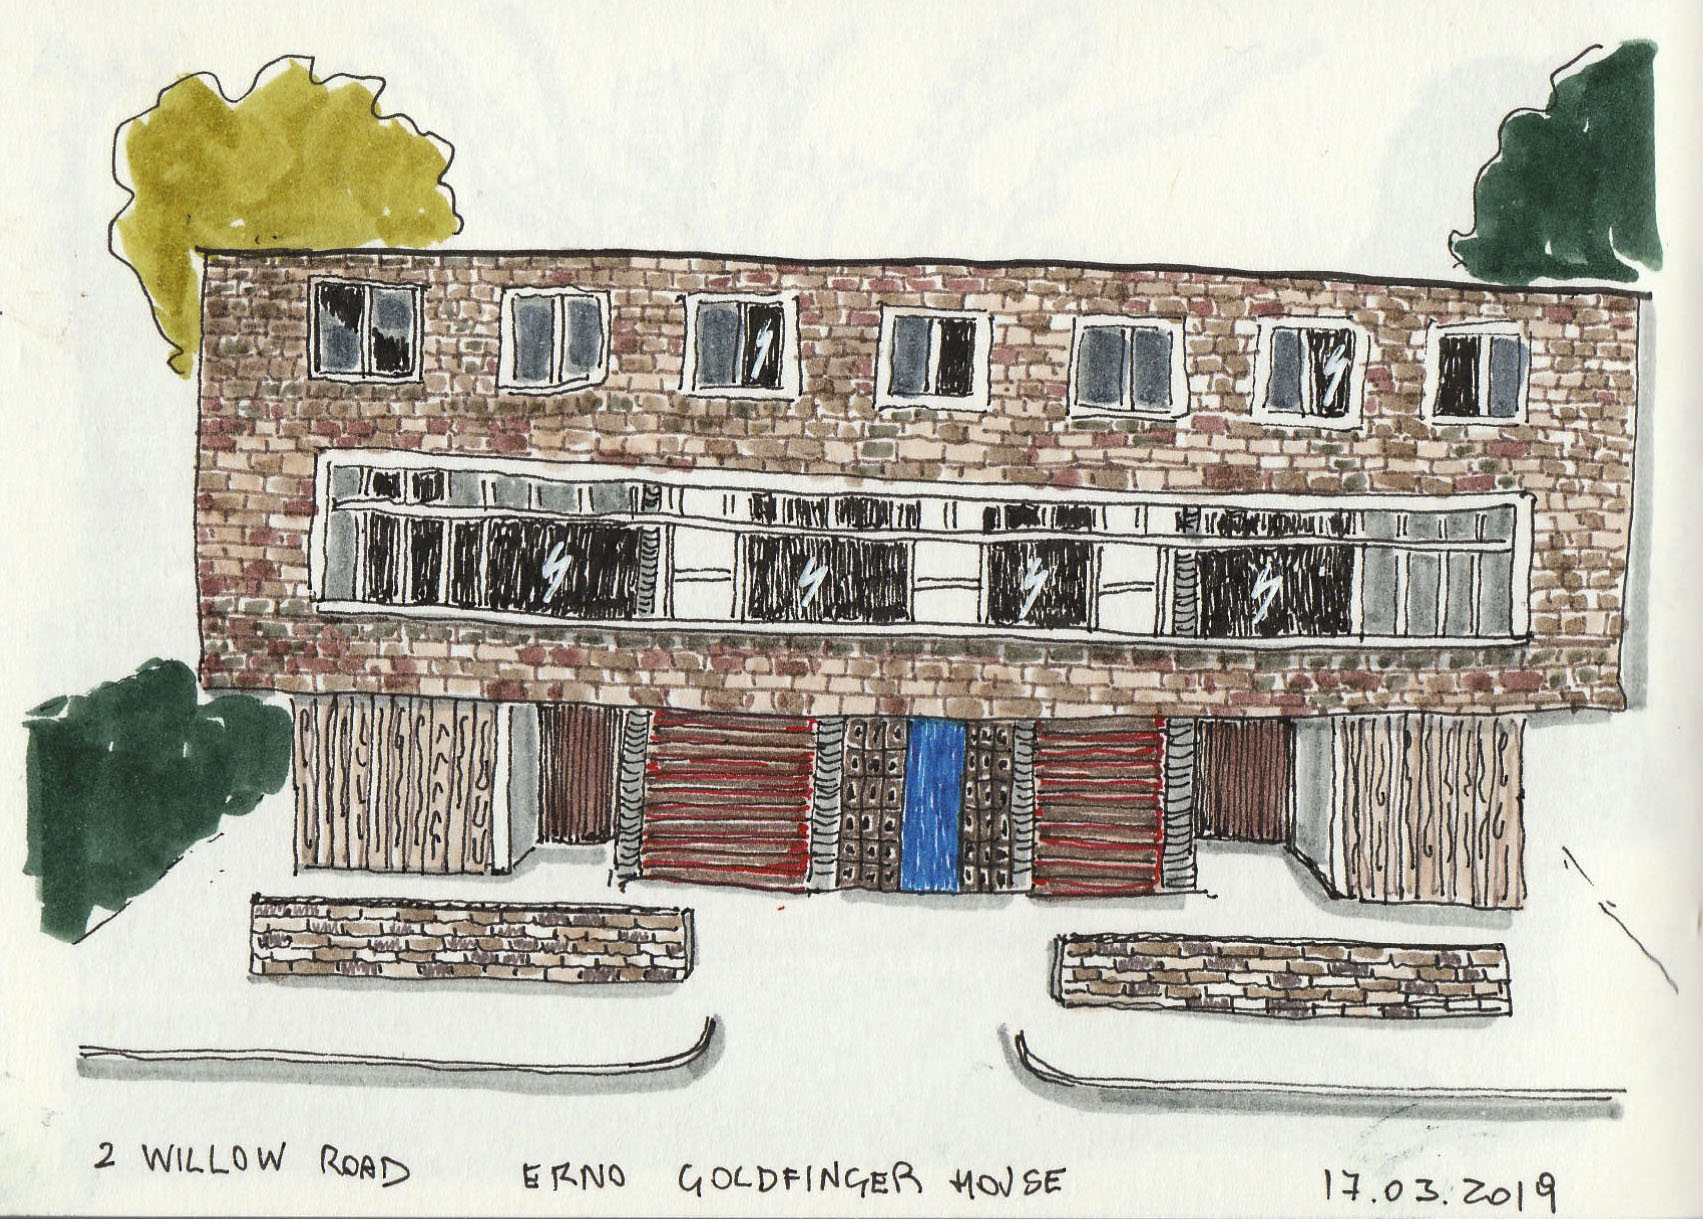 2 Willow Rd Erno Goldfinger